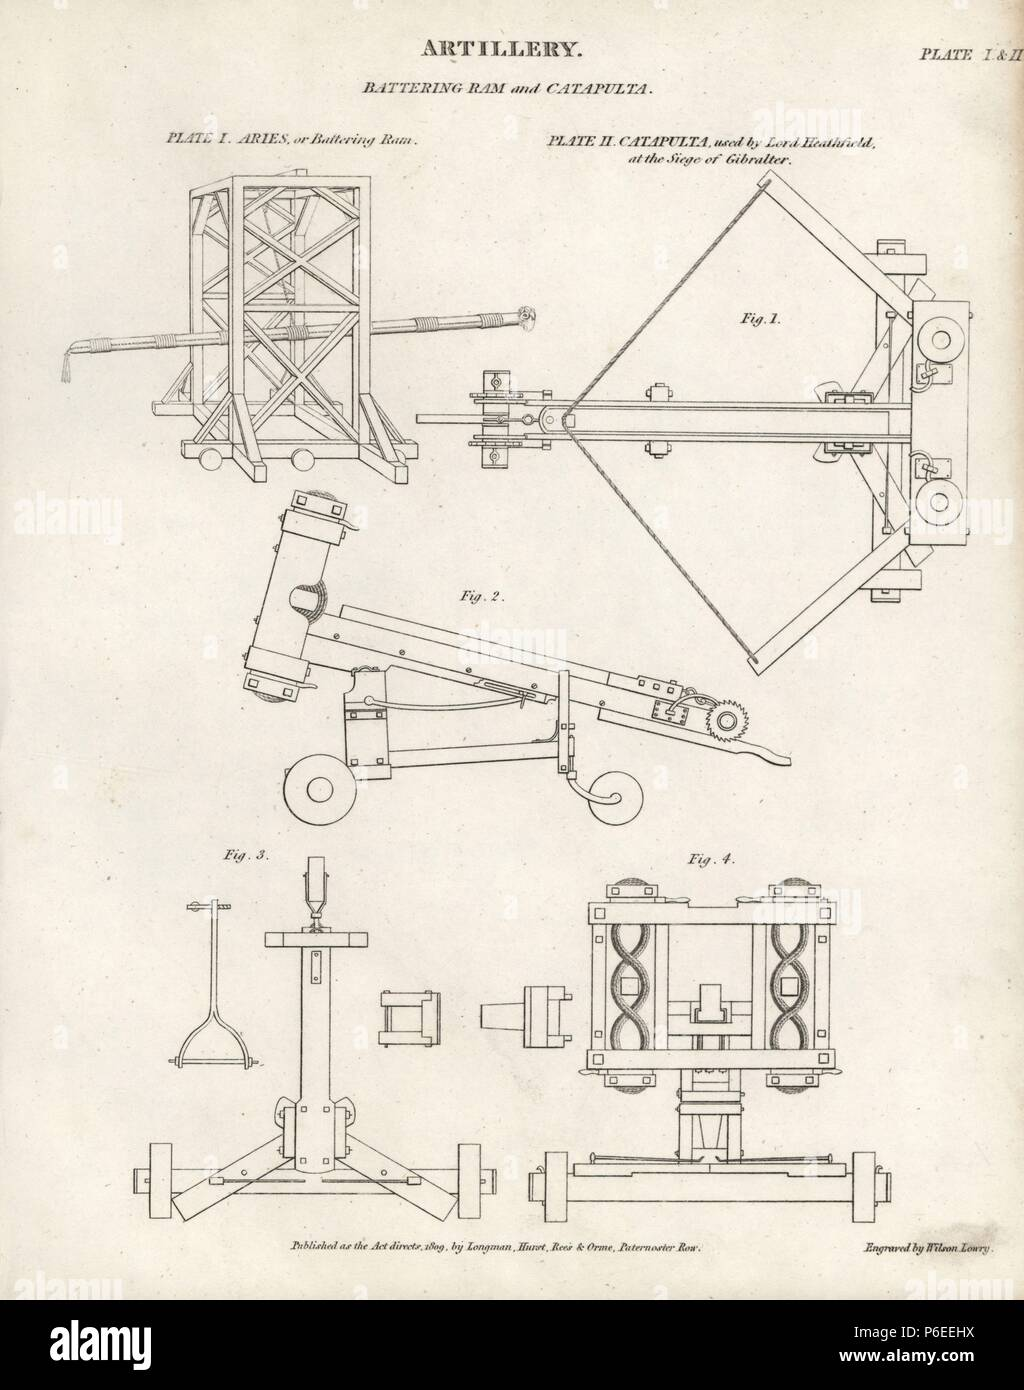 Artillery: Aries or wooden battering ram and catapult used ... on